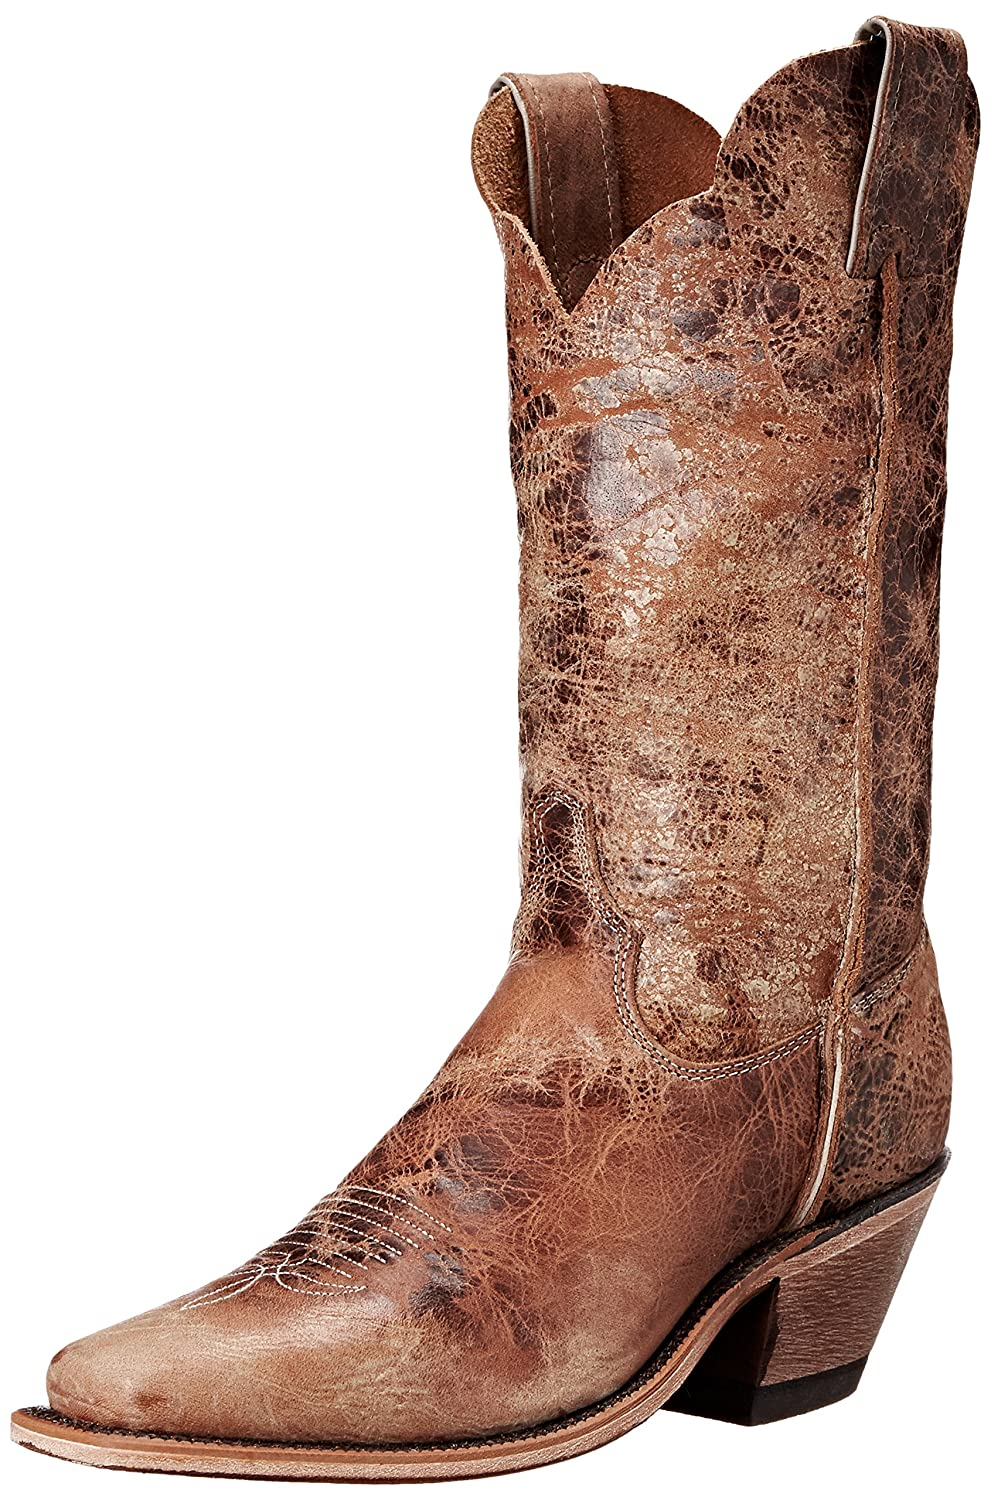 58f406463 Justin Boots Women's 11 Inch Bent Rail Riding Boot